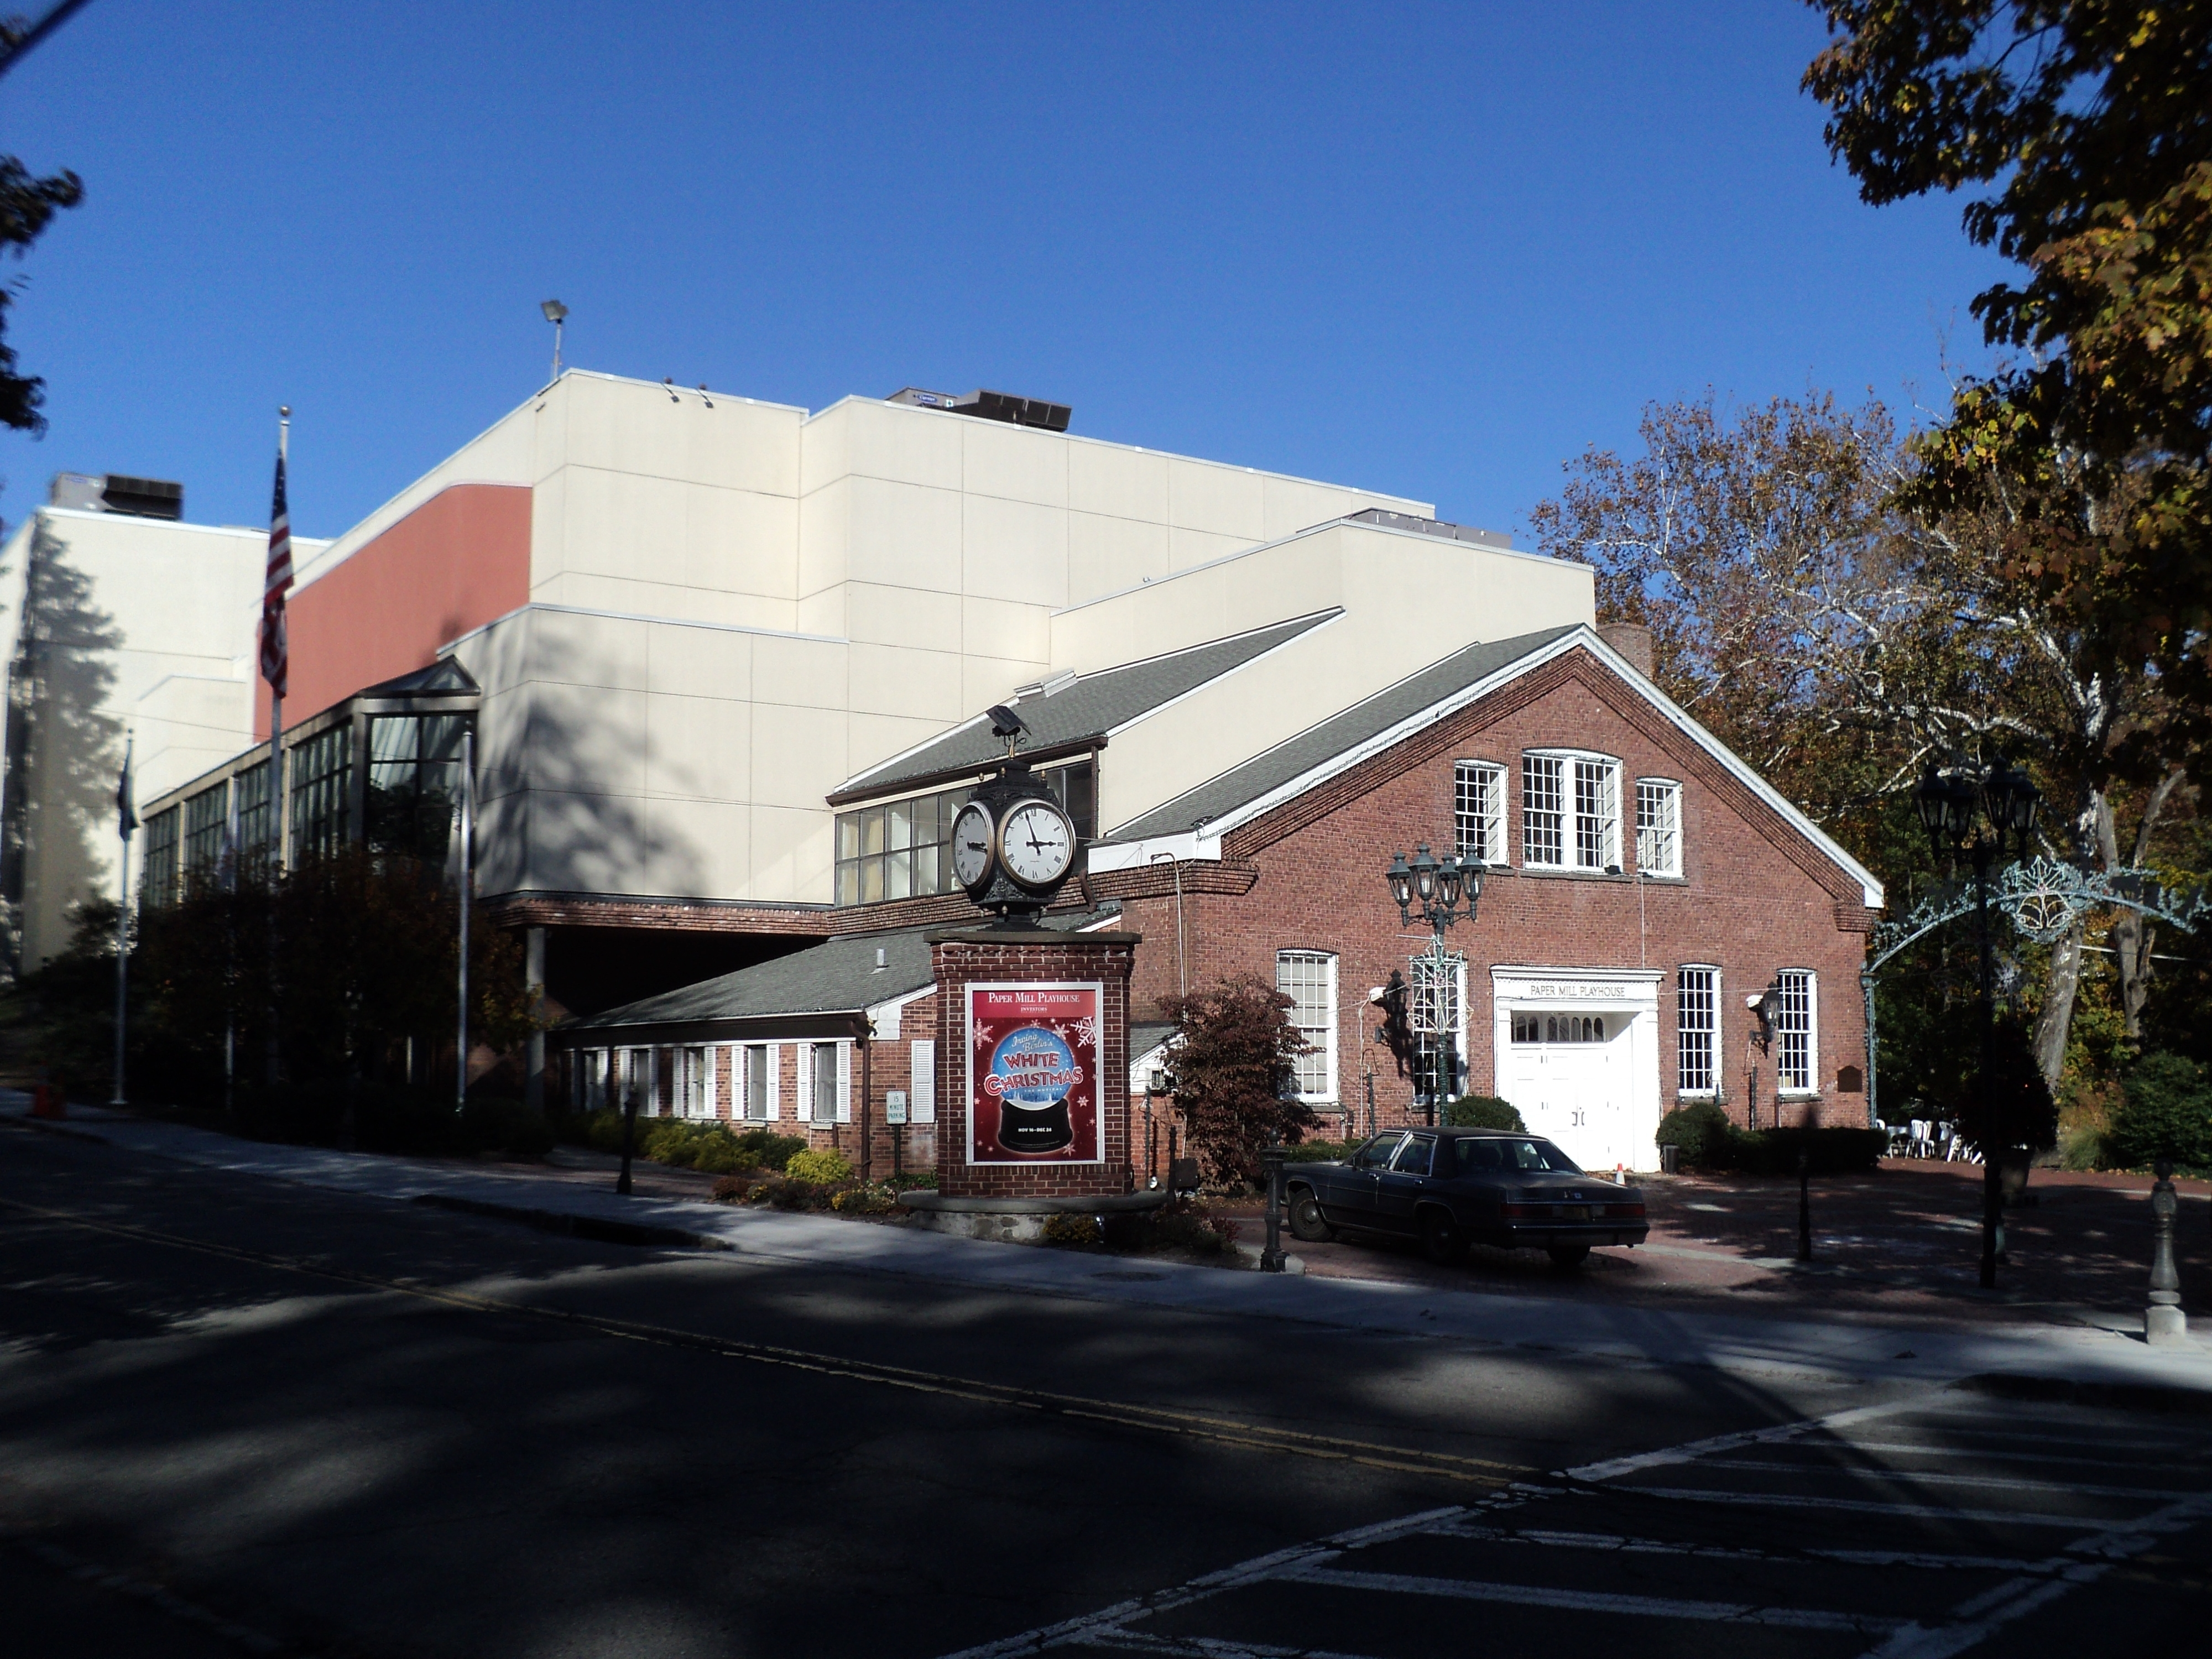 Paper Mill Playhouse